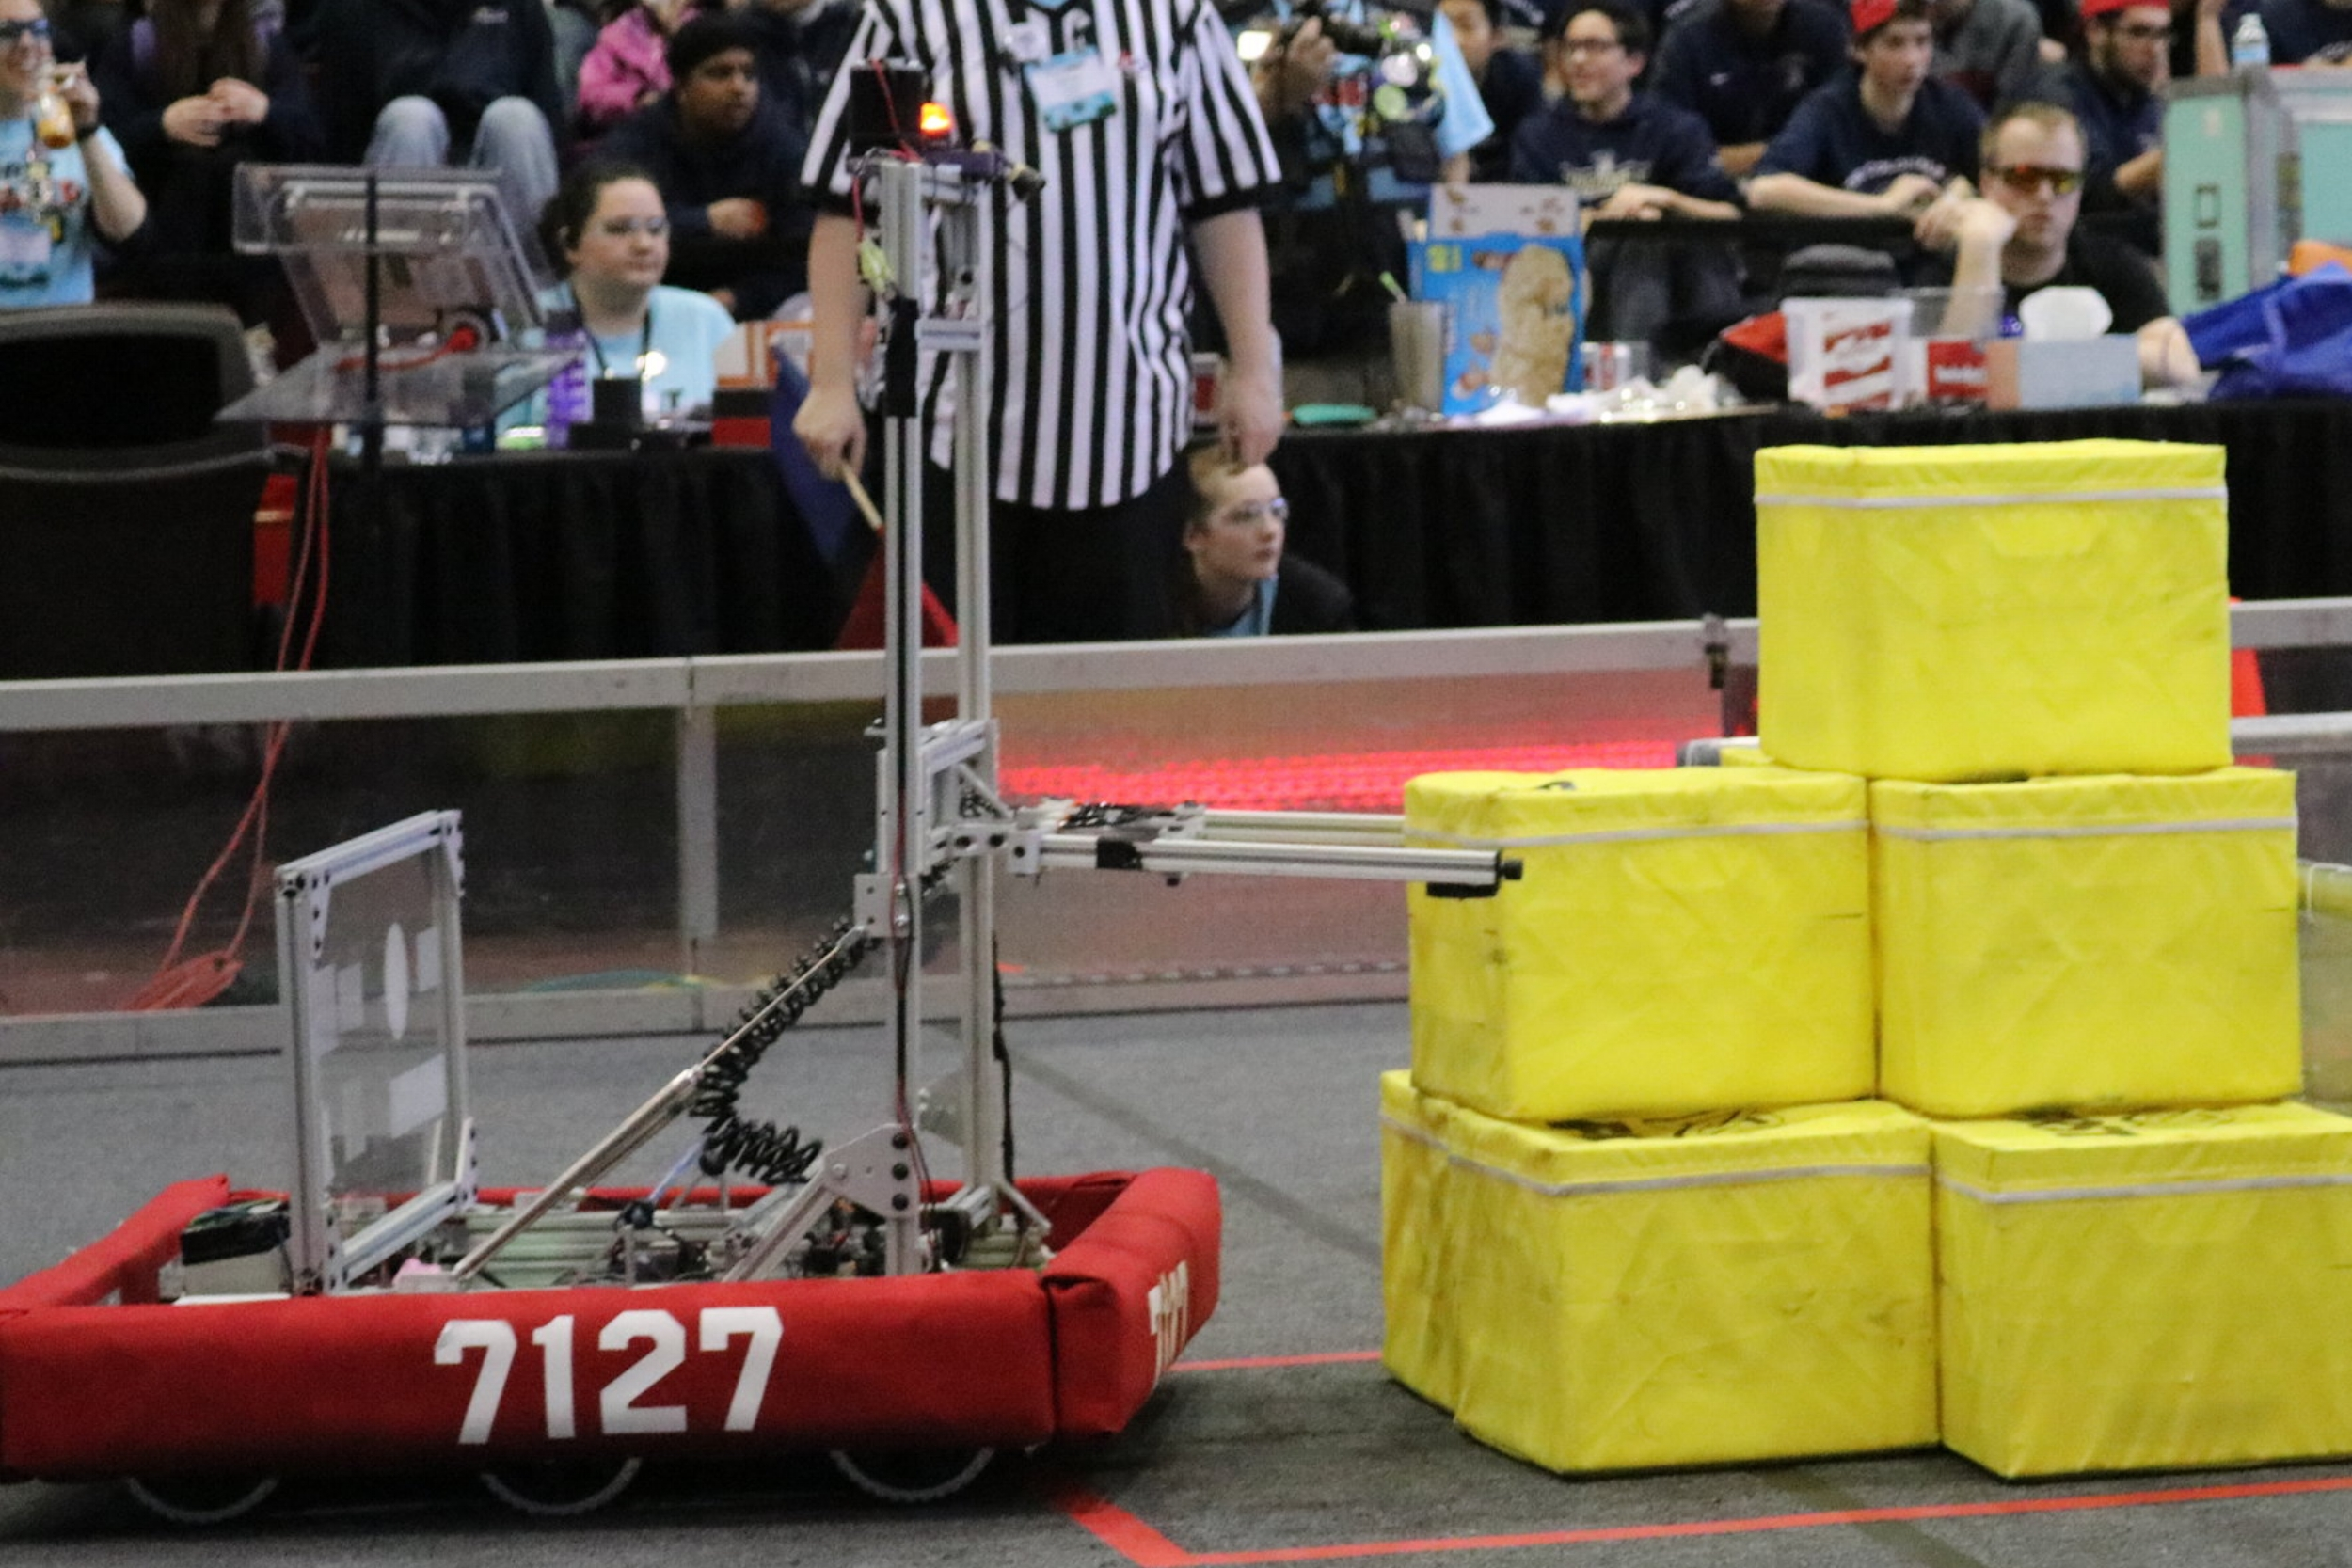 Meet Sir LanceBot - Weight:119.75 lbs. / Max. Cube lift height: 28 in.   Drive Train:Tank Drive (Belt driven) / Vertical Arm:Screw-driven lift with pneumatic grippers and motorized intake wheels